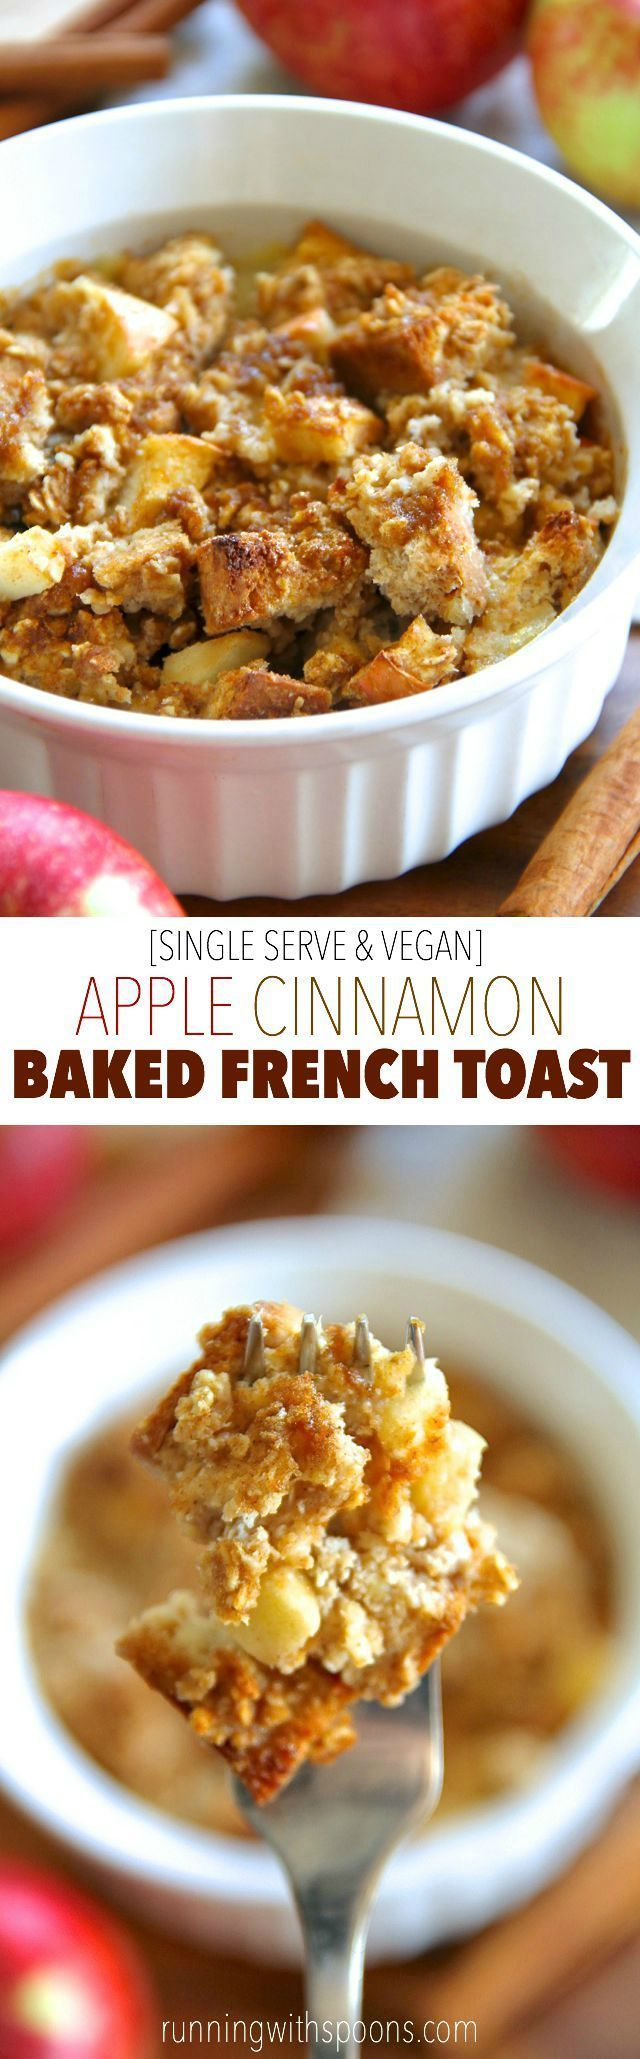 This single serve baked French toast is spiked with the delicious combination of apples and cinnamon! It�s vegan, refined sugar free, easily made gluten-free, and packed with fiber and plant-based protein. A healthy and delicious breakfast! || runningwith